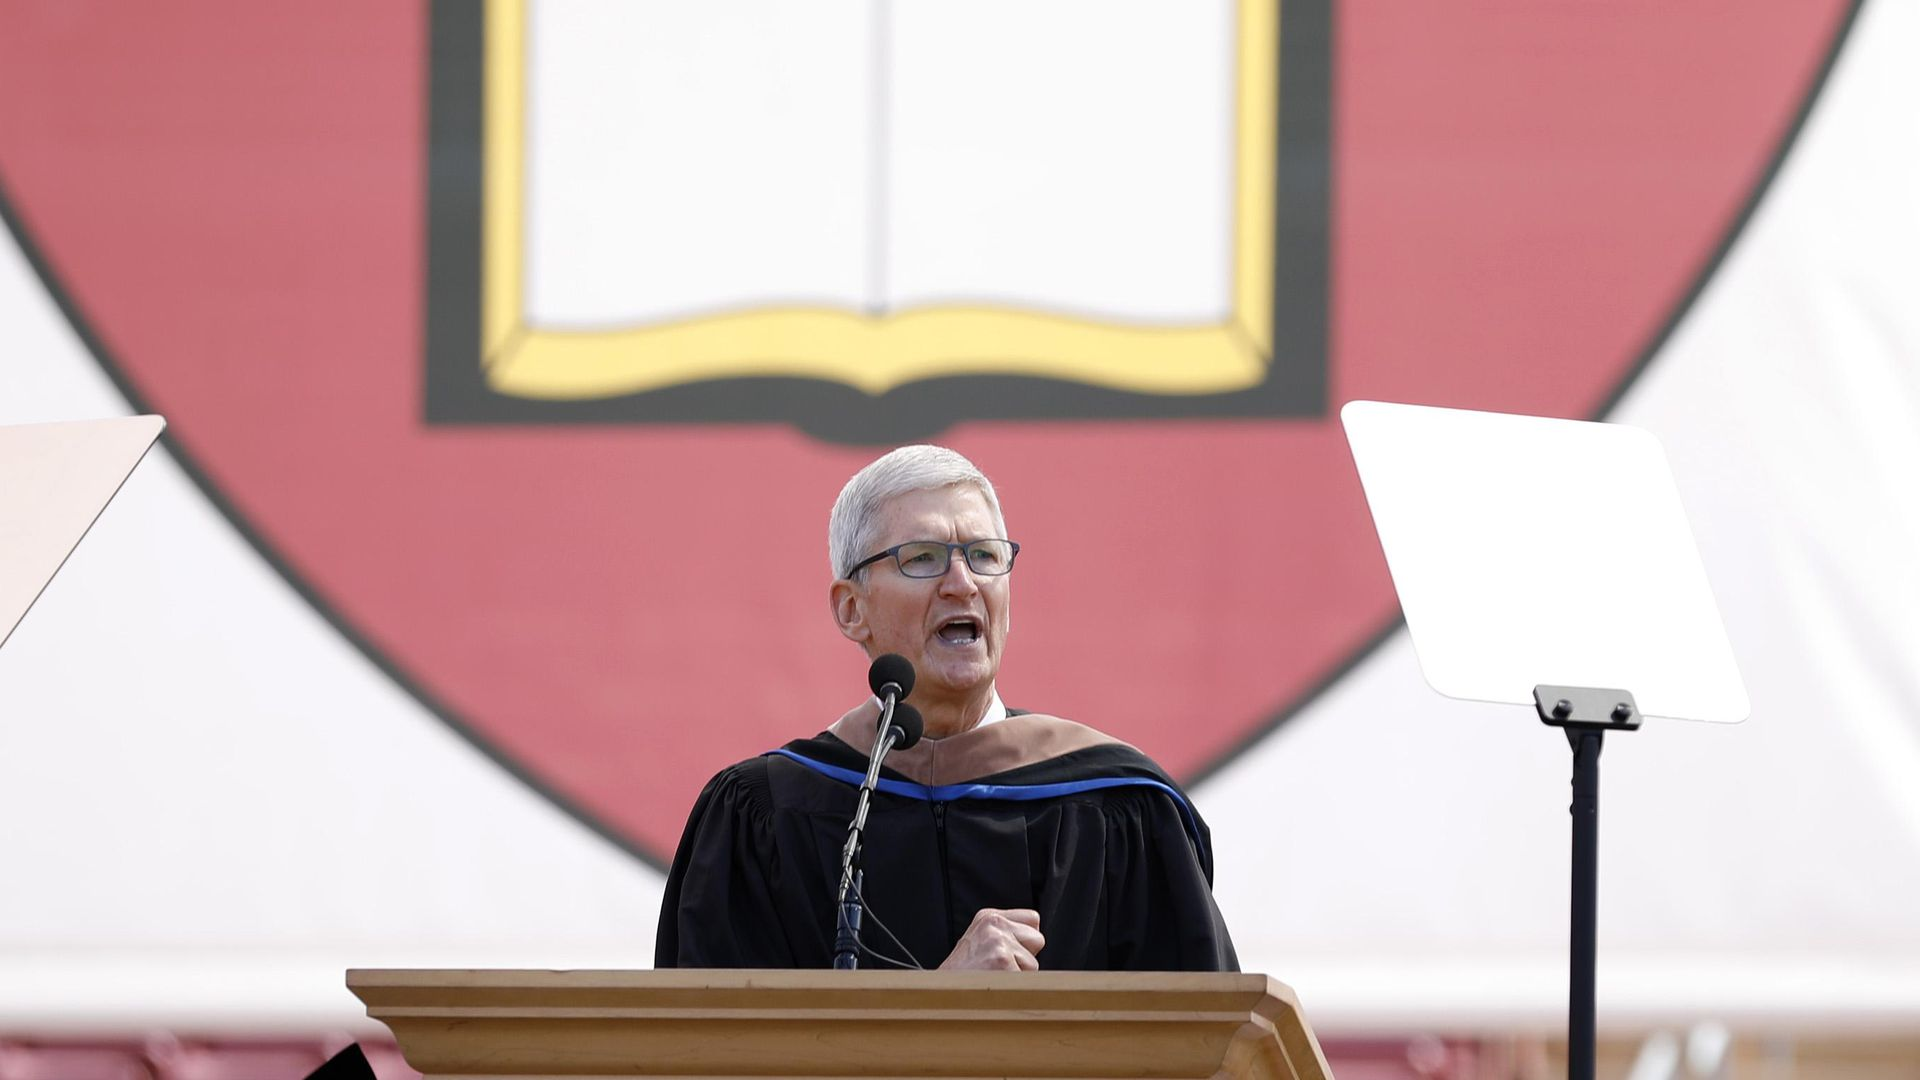 Apple CEO Tim Cook at the lectern during Sunday's commencement for Stanford graduates